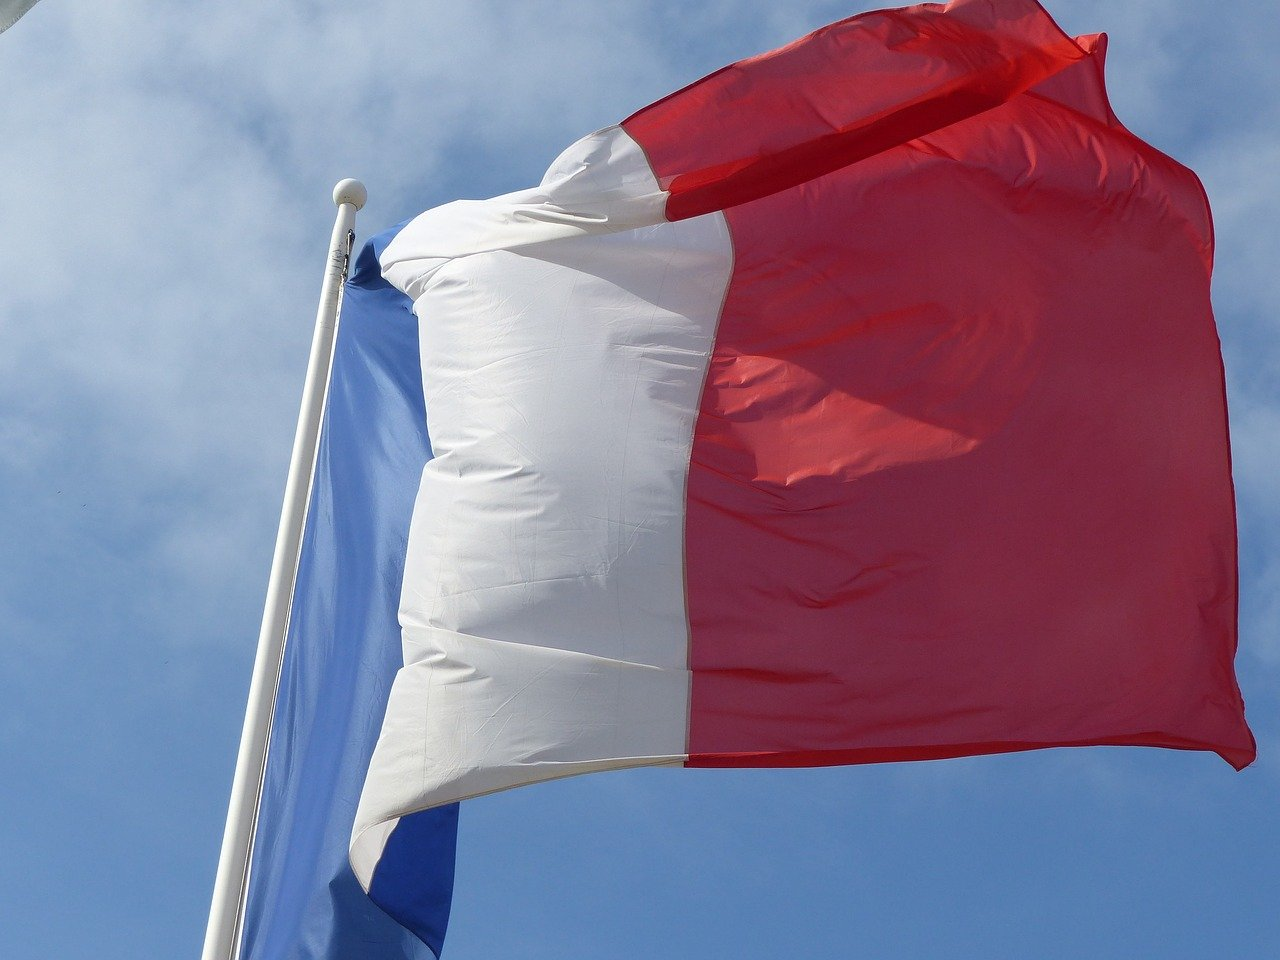 Flag France French Flag French  - Hreisho / Pixabay